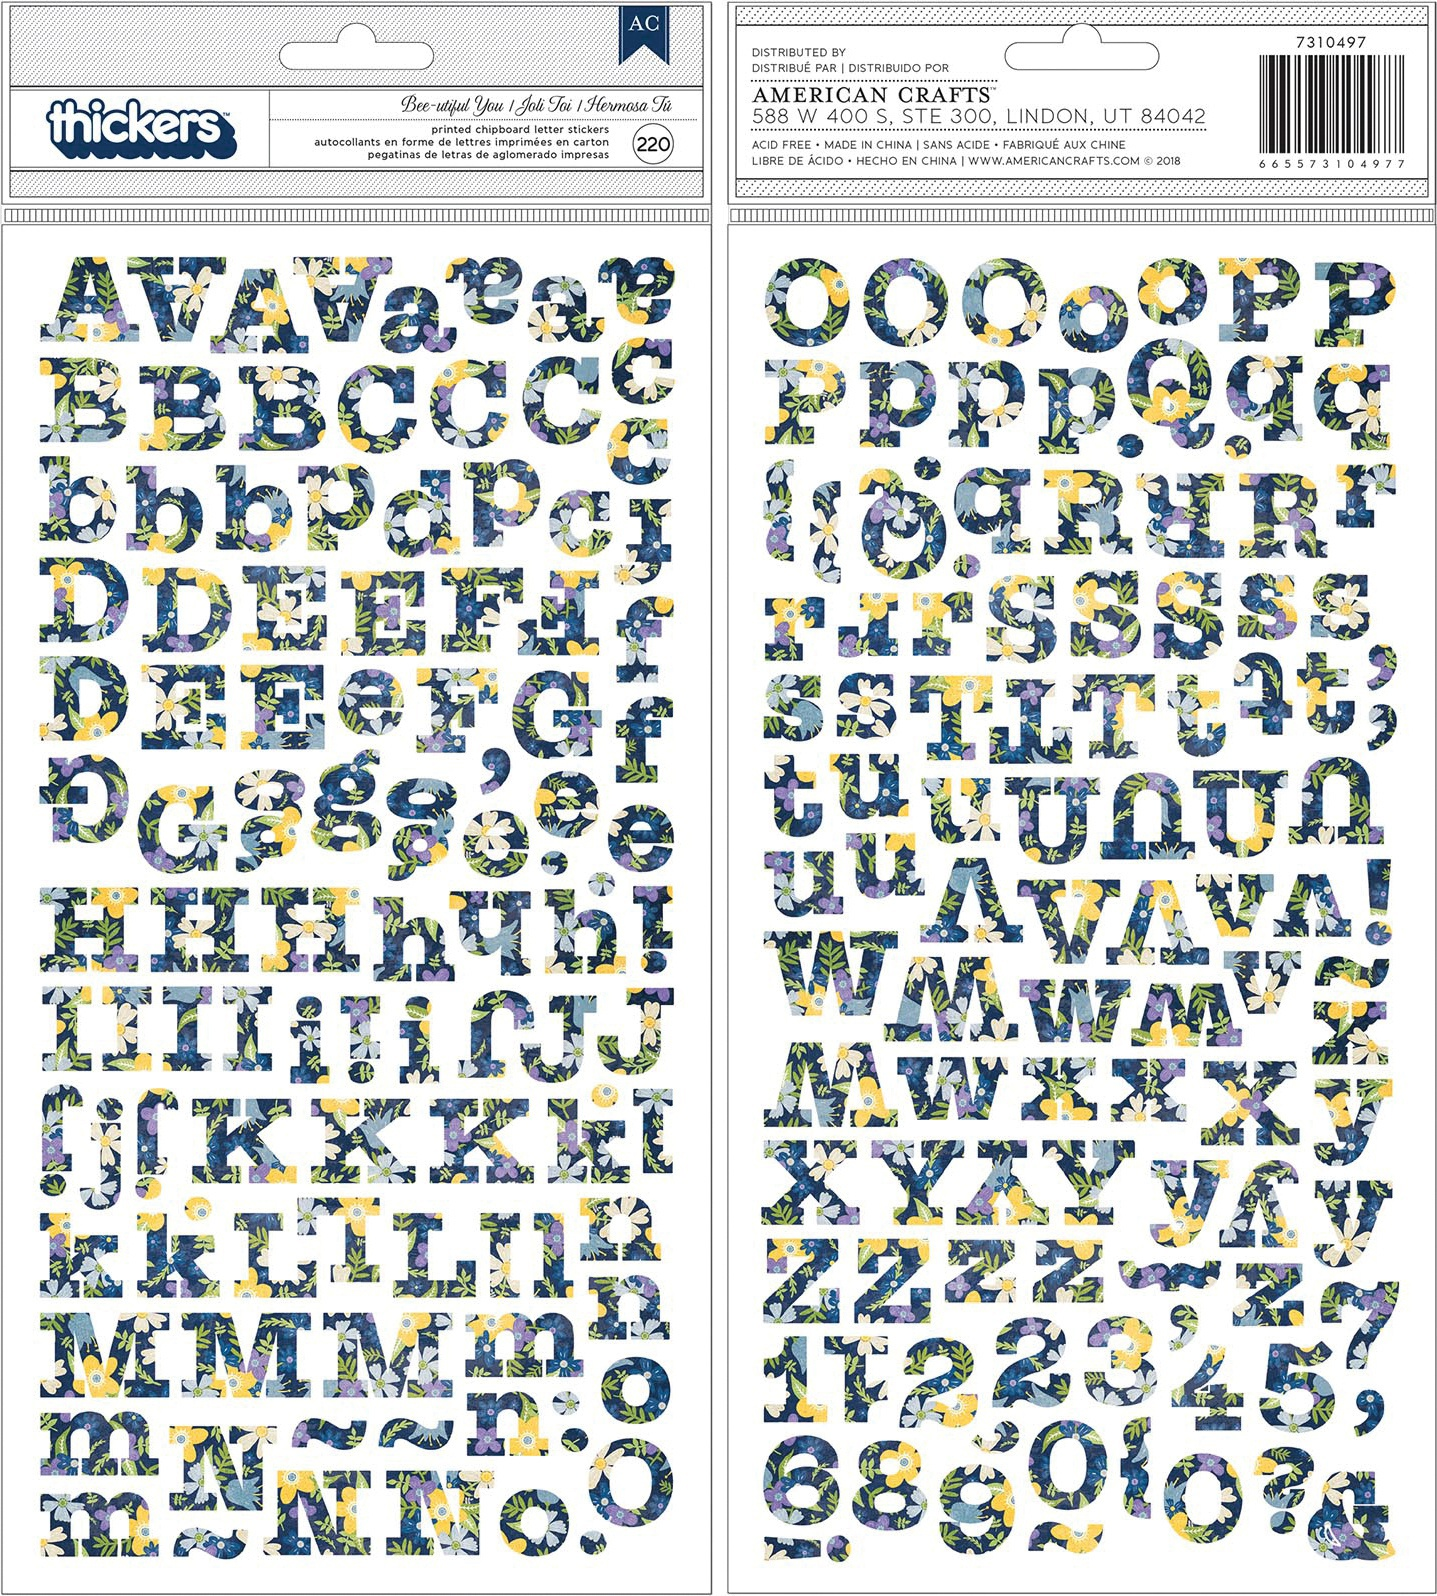 American Crafts Thickers Stickers 5.5X11-Bee-Utiful You, 220/Pkg